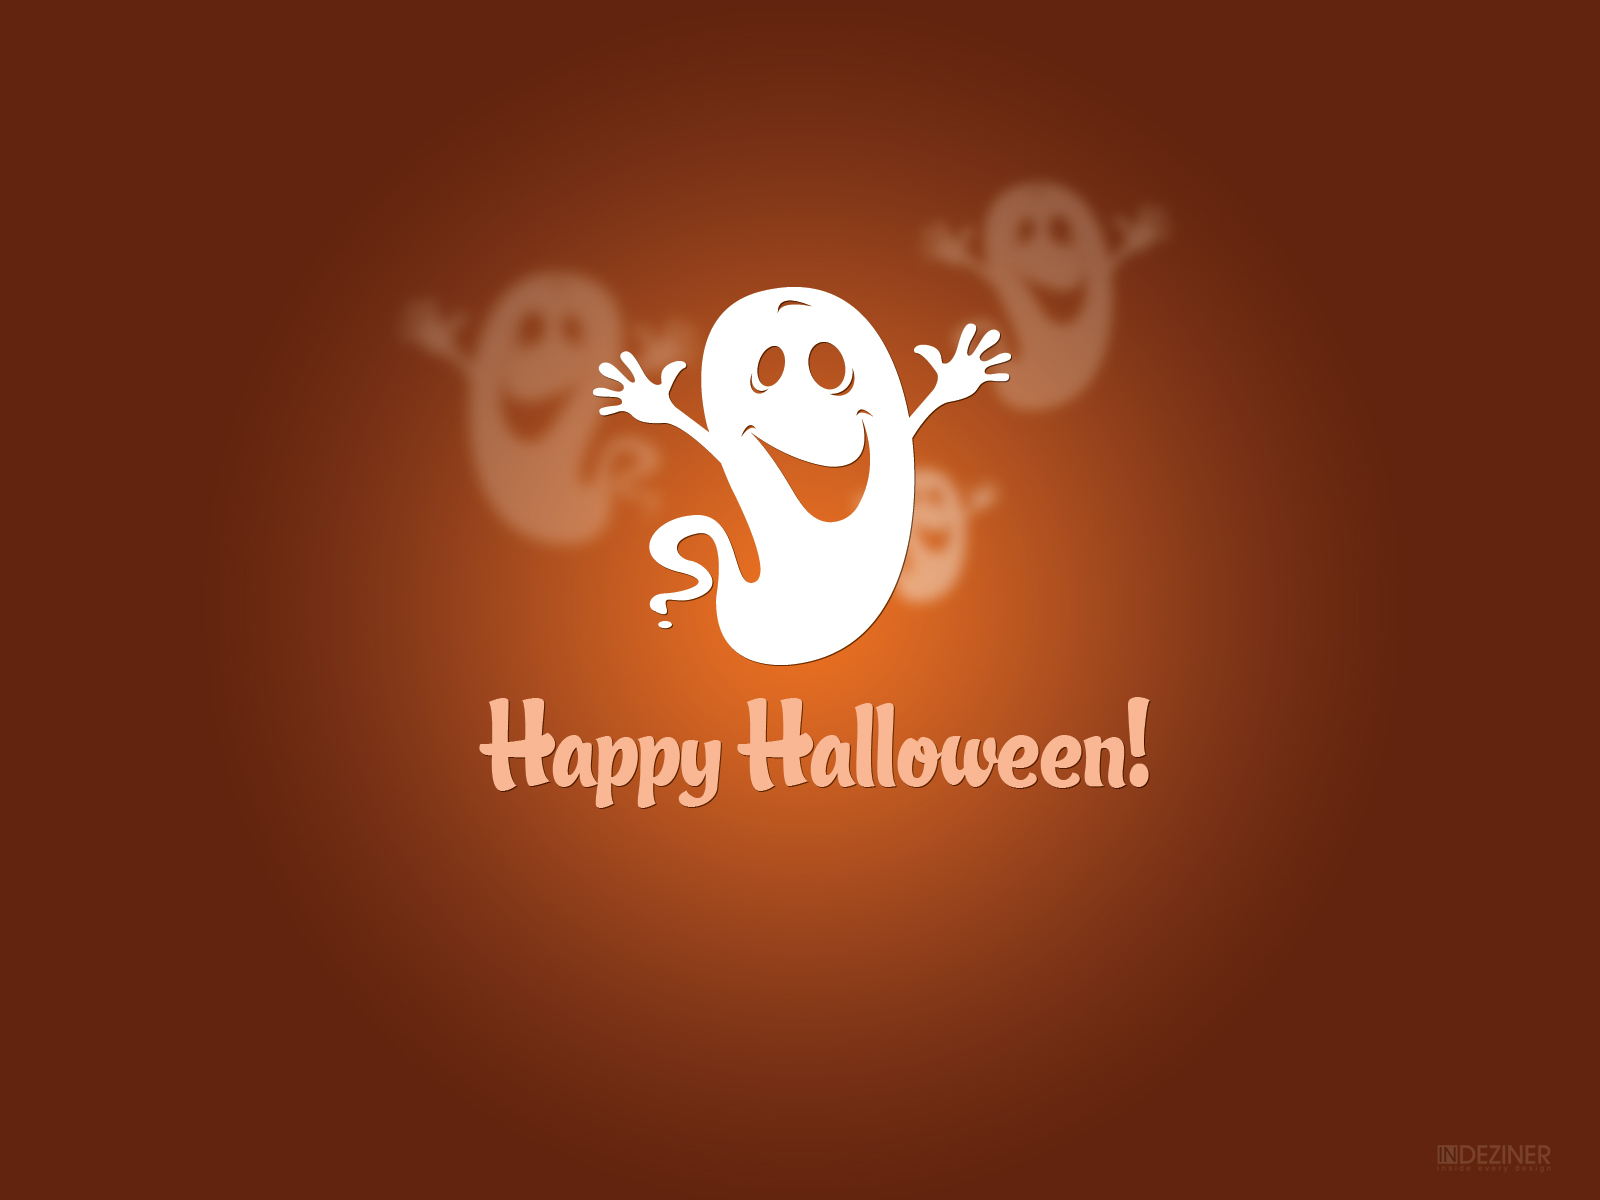 1600x1200 Happy Halloween desktop PC and Mac wallpaper 1600x1200